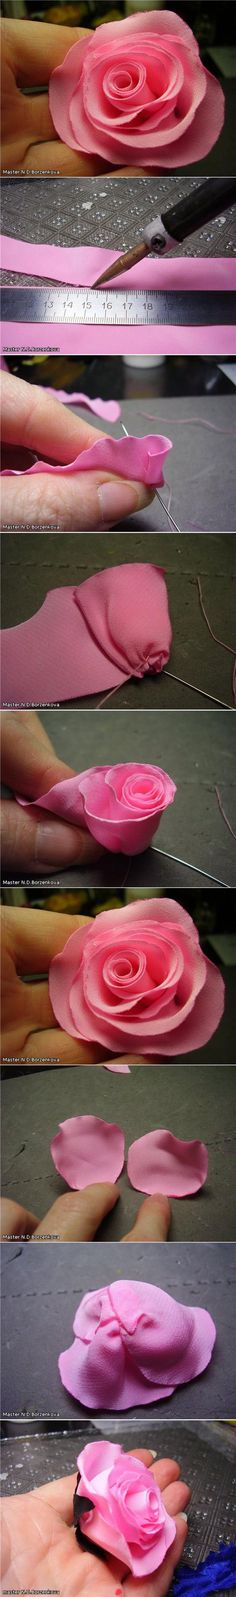 i was just thinking about ribbon roses at work, and here it is, all up in my face                                                                                                                                                      More